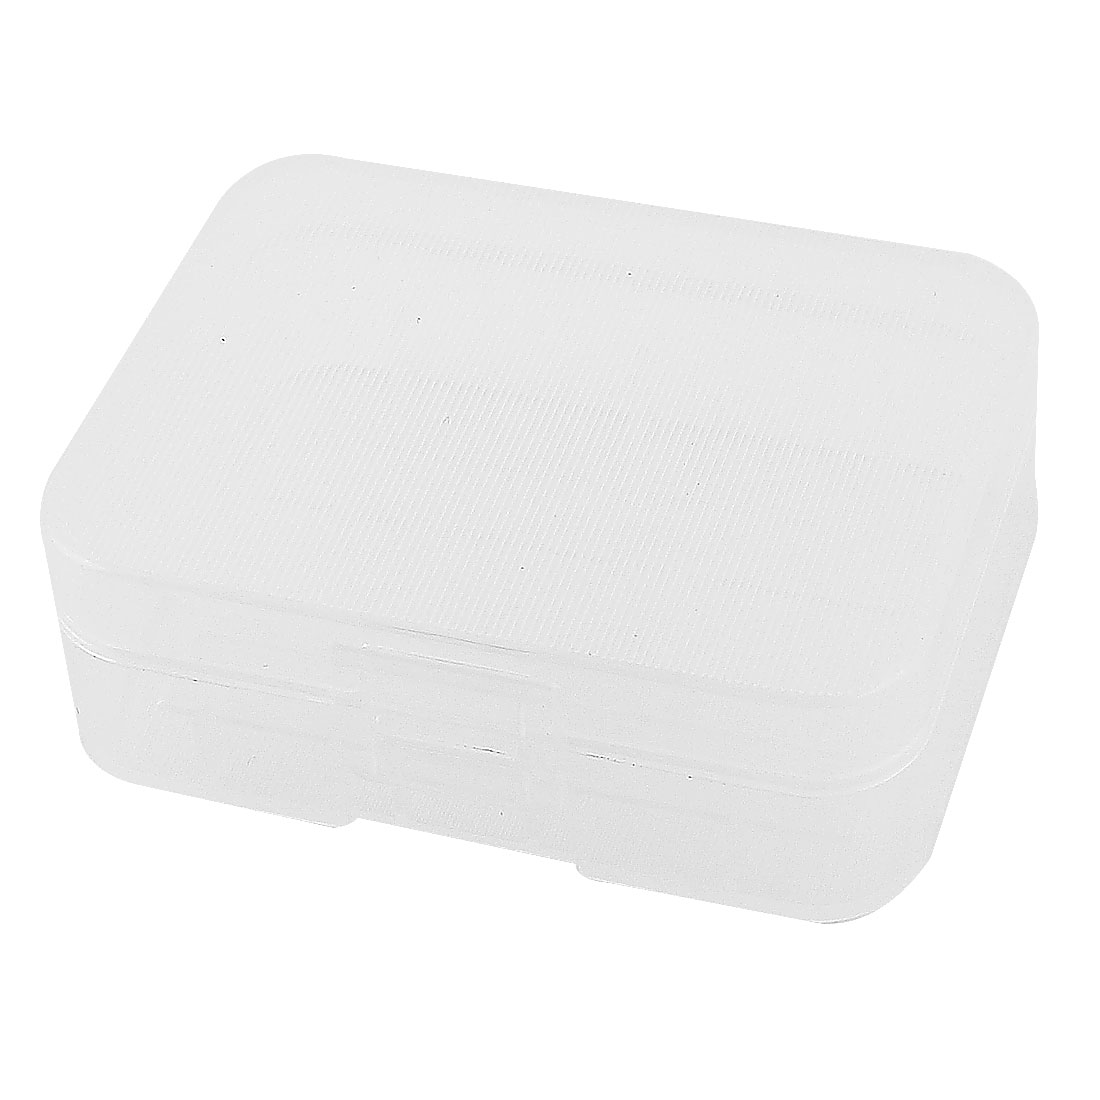 Hard Plastic Case Holder Storage Box Container for 2 x 18650 Battery